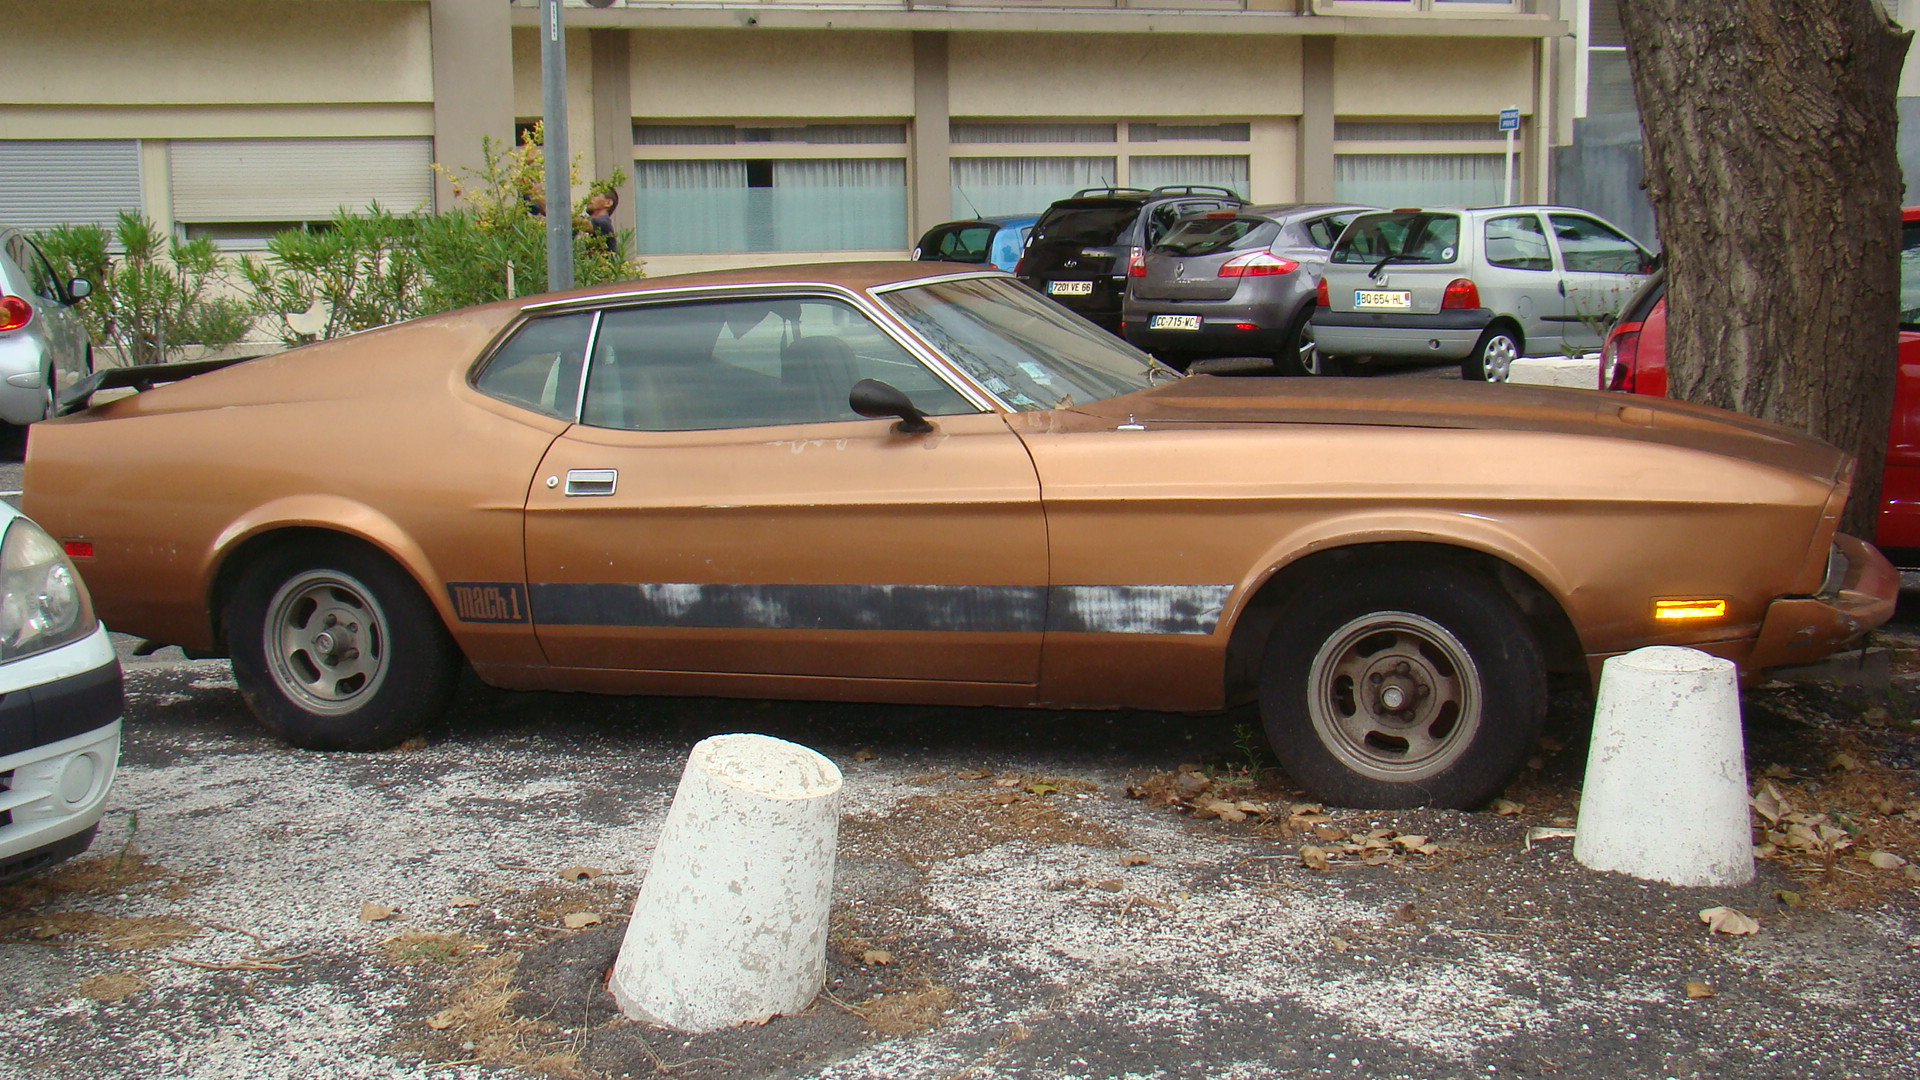 1973 Ford Mustang Mach 1 profile pre restoration France